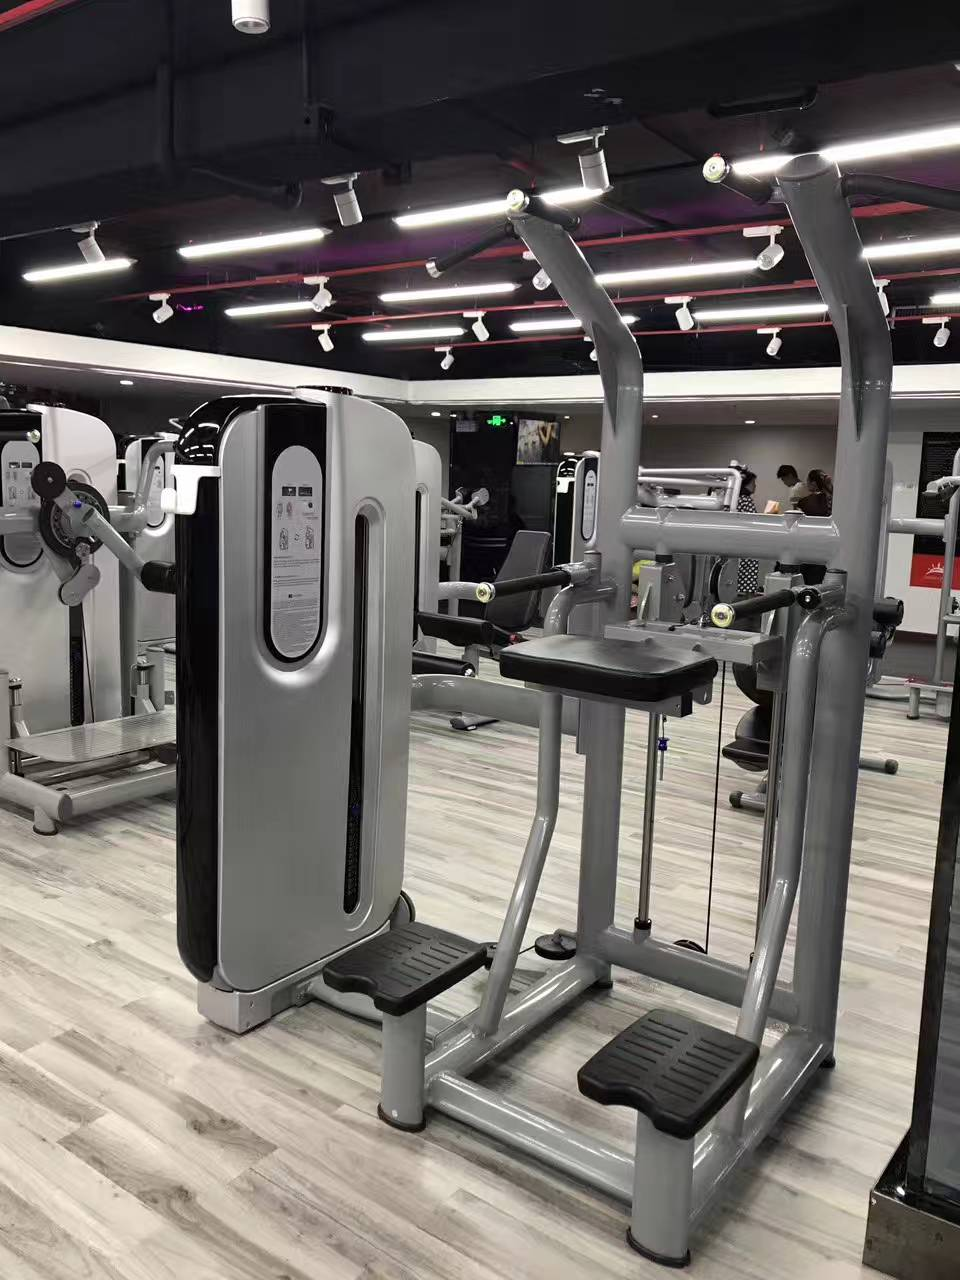 Big Promotion on Fitness Equipment New Design Italian Assisted Dip/Chin Matrix Exercise Machine